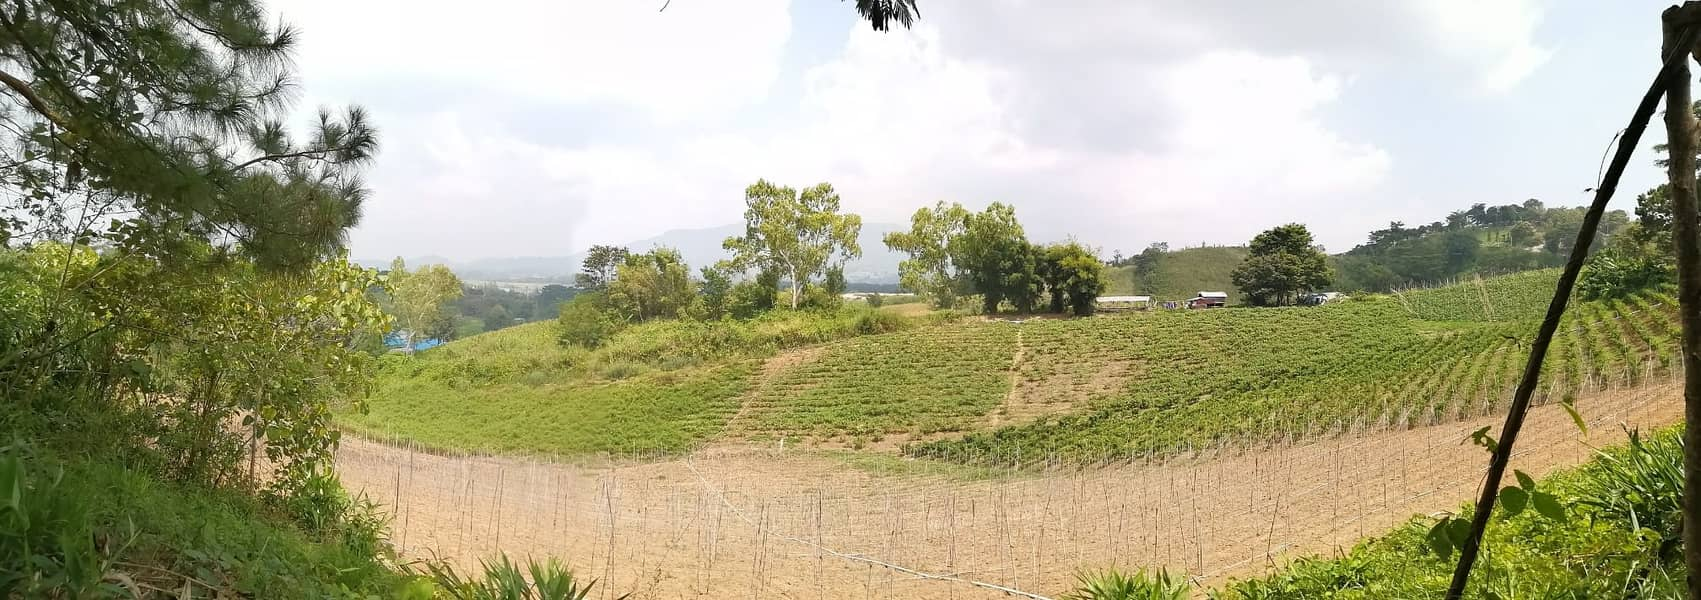 Land for sale in Khampson Subdistrict, Khao Kho District, next to a slope road, beautiful view, good atmosphere, 7500 per square meter